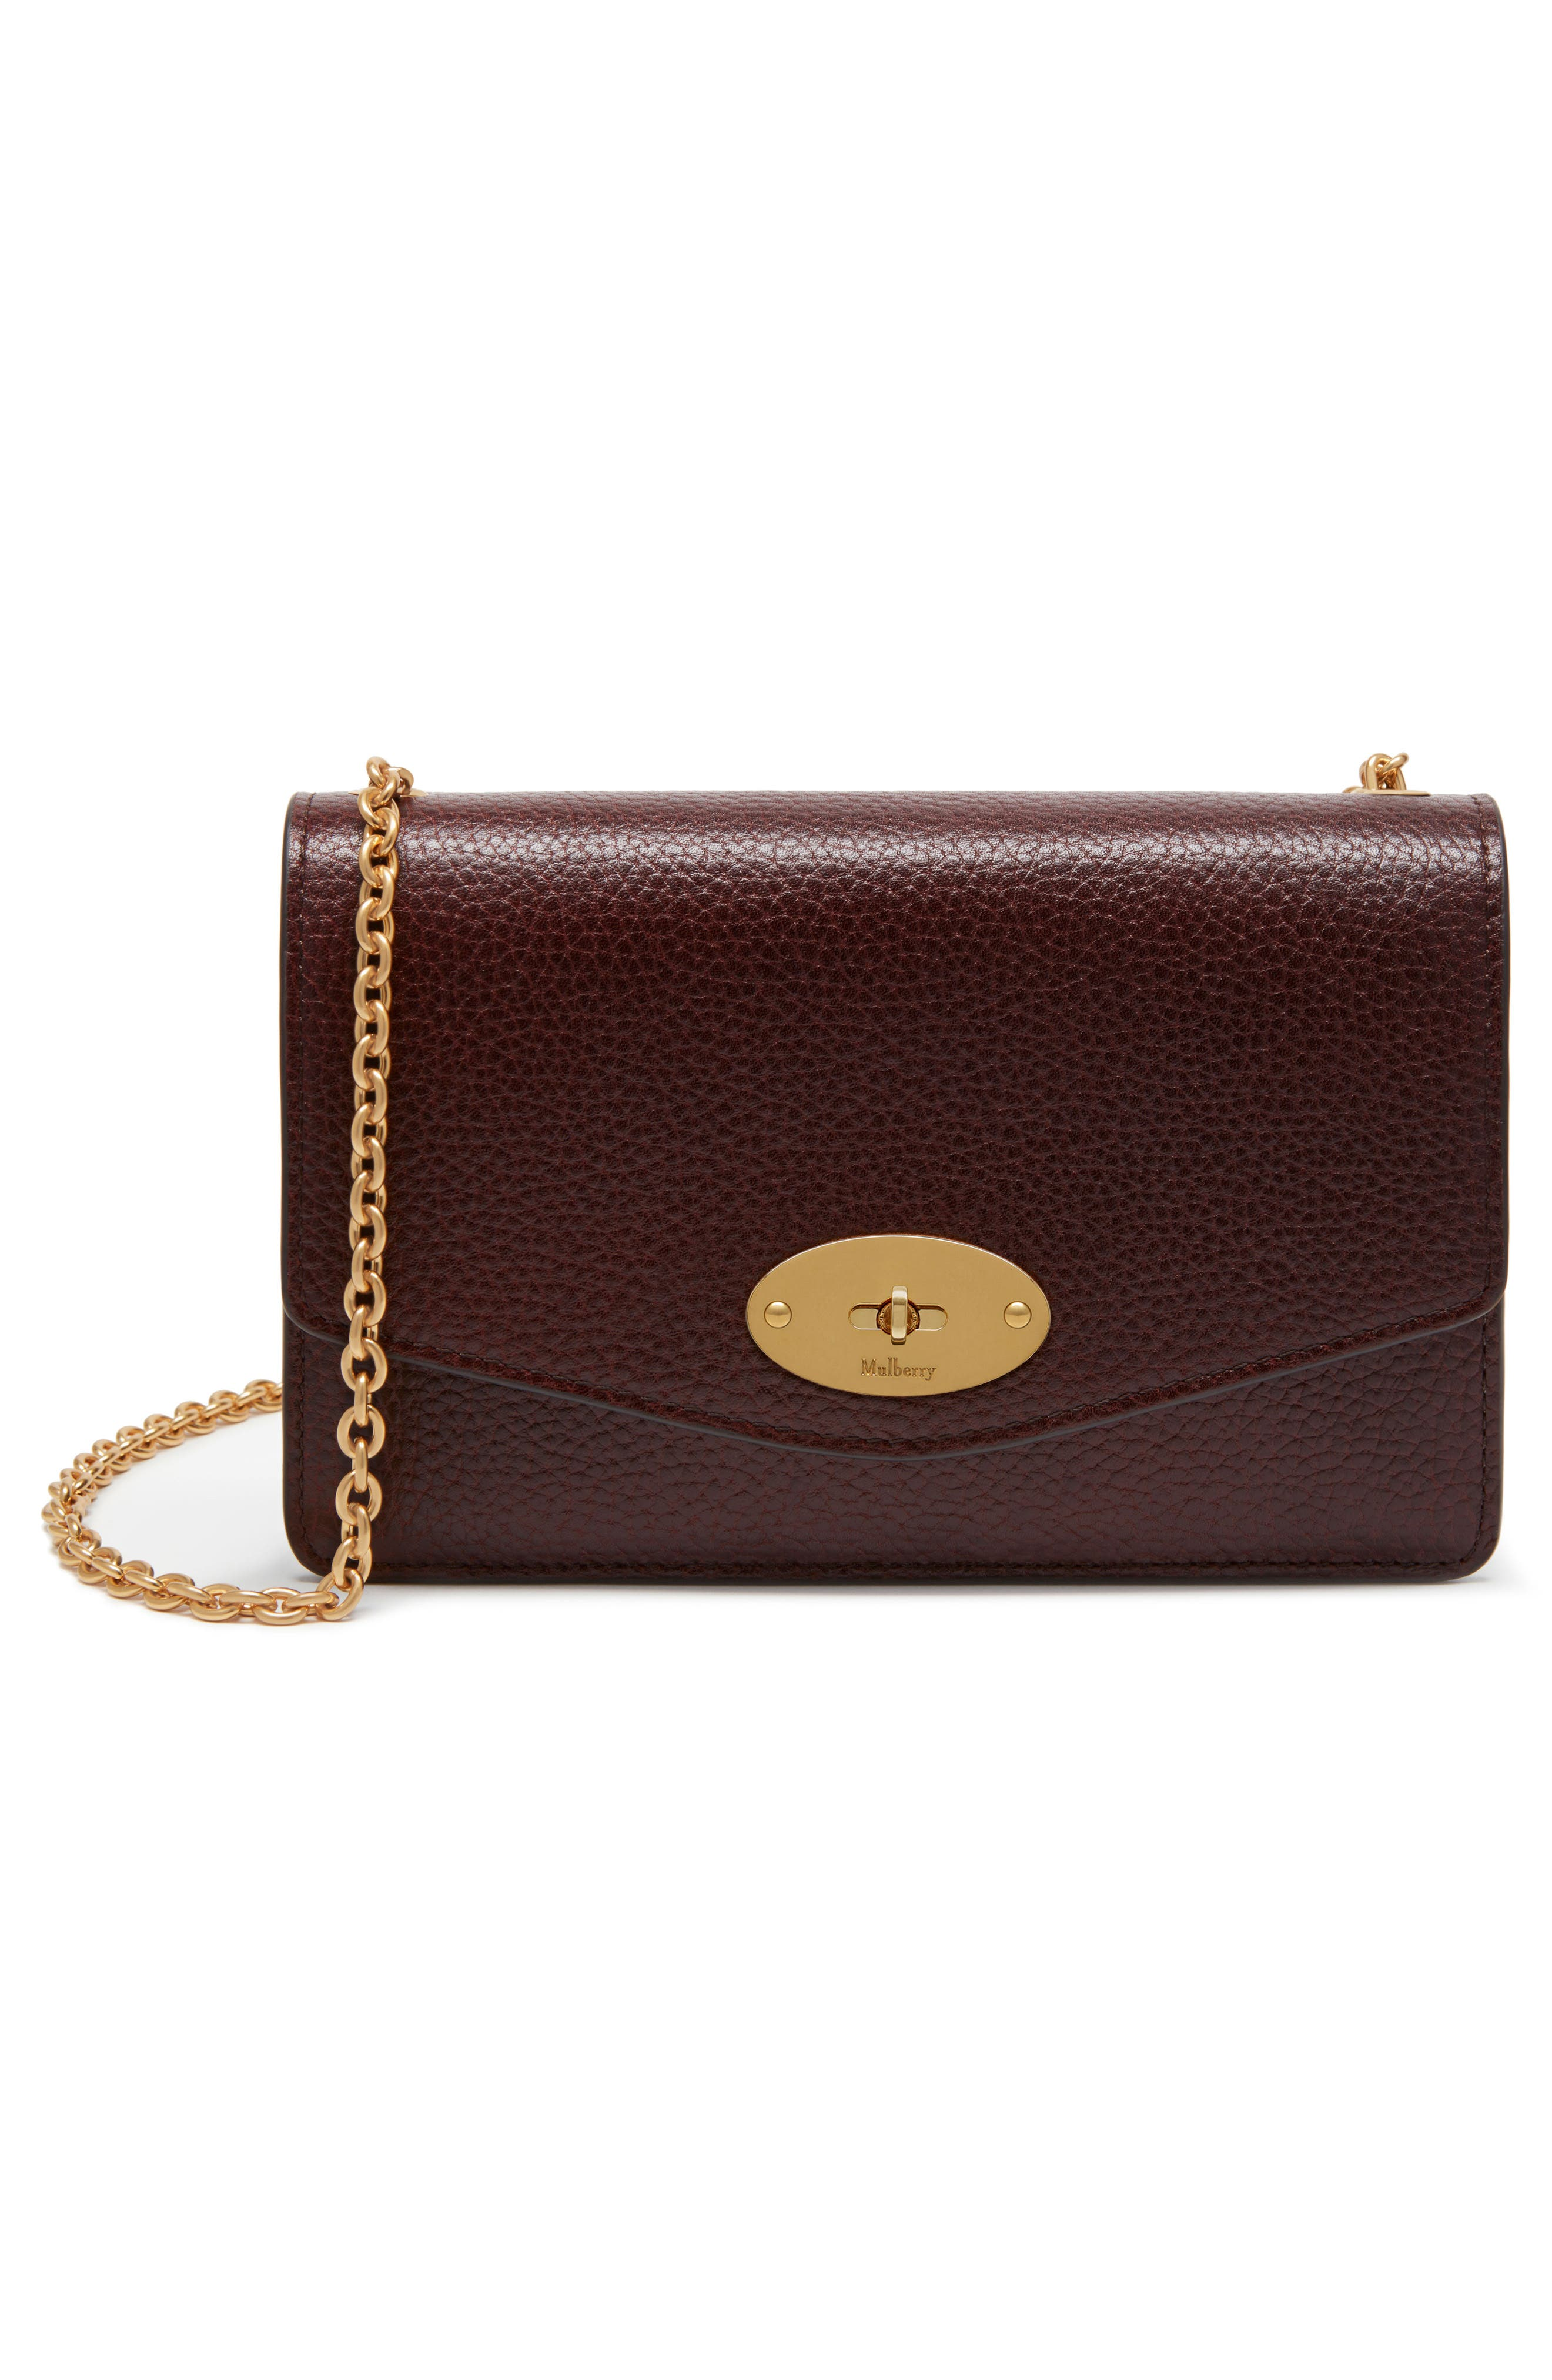 Alternate Image 1 Selected - Mulberry Small Darley Leather Clutch